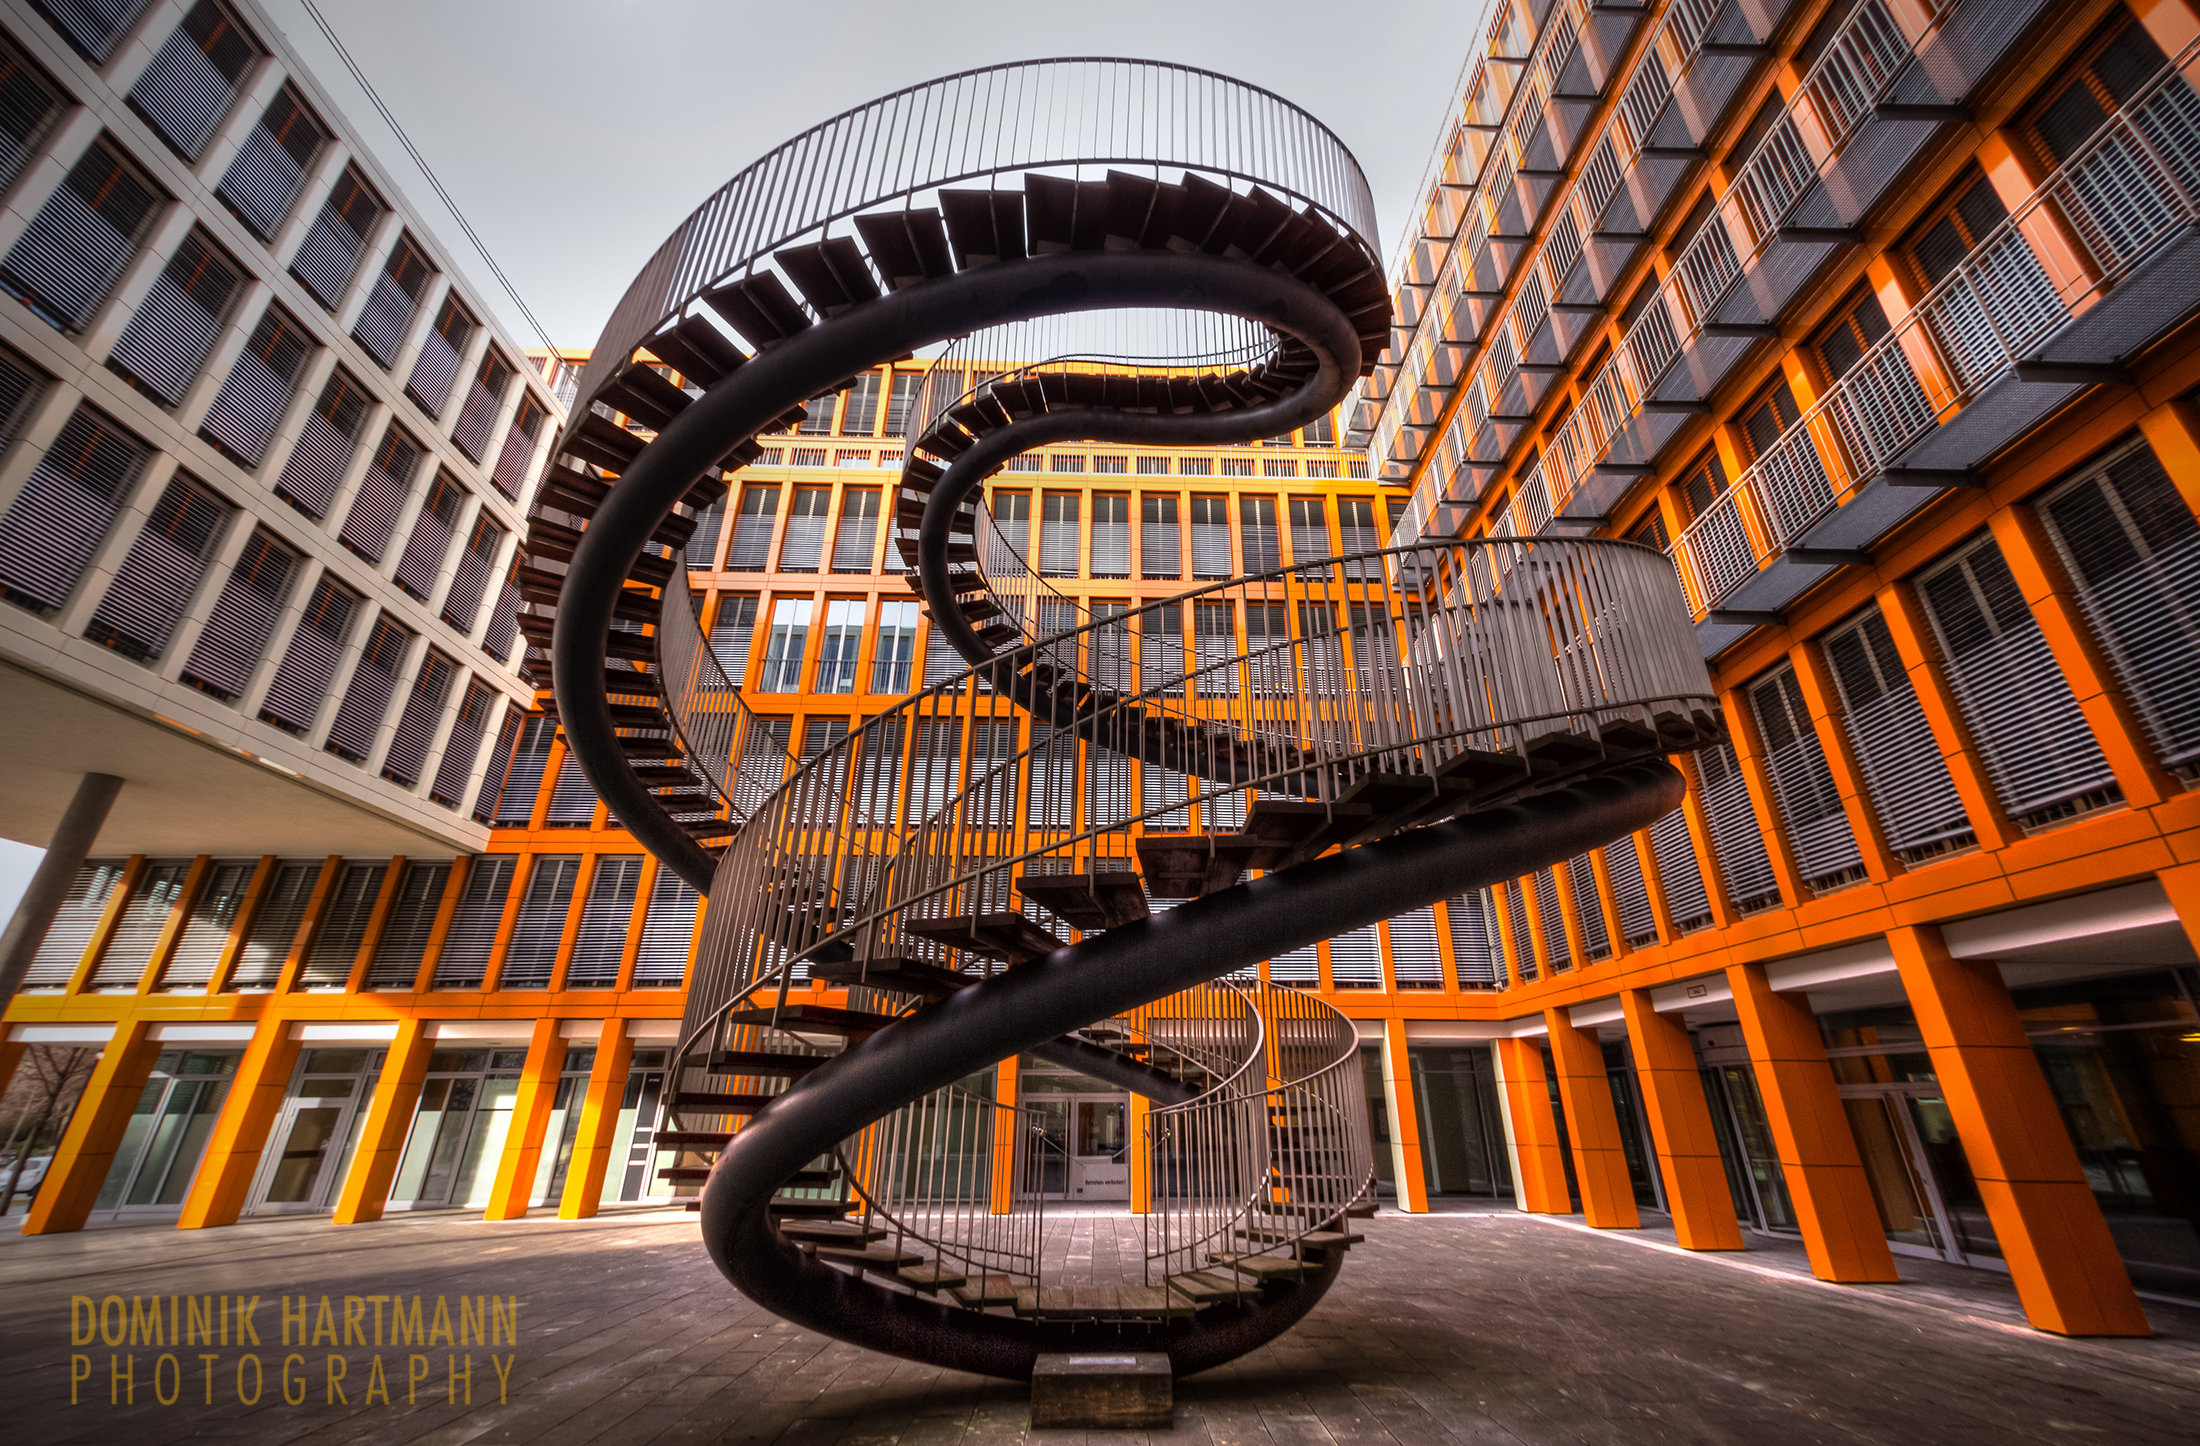 penrose stairs Dominik Hartmann Photography